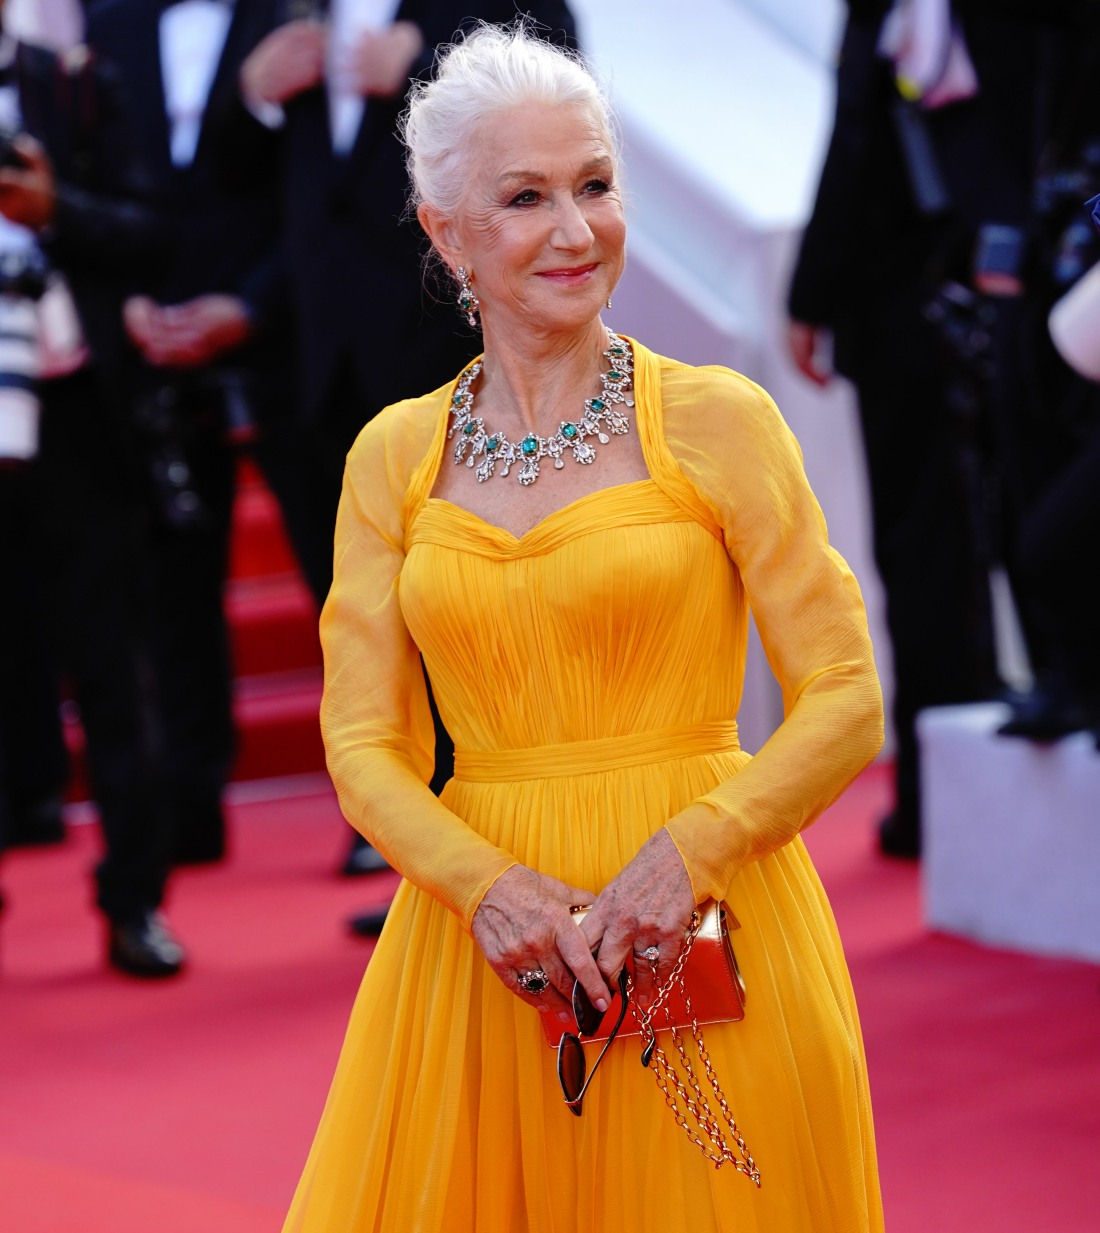 74th Cannes Film Festival - Opening Ceremony